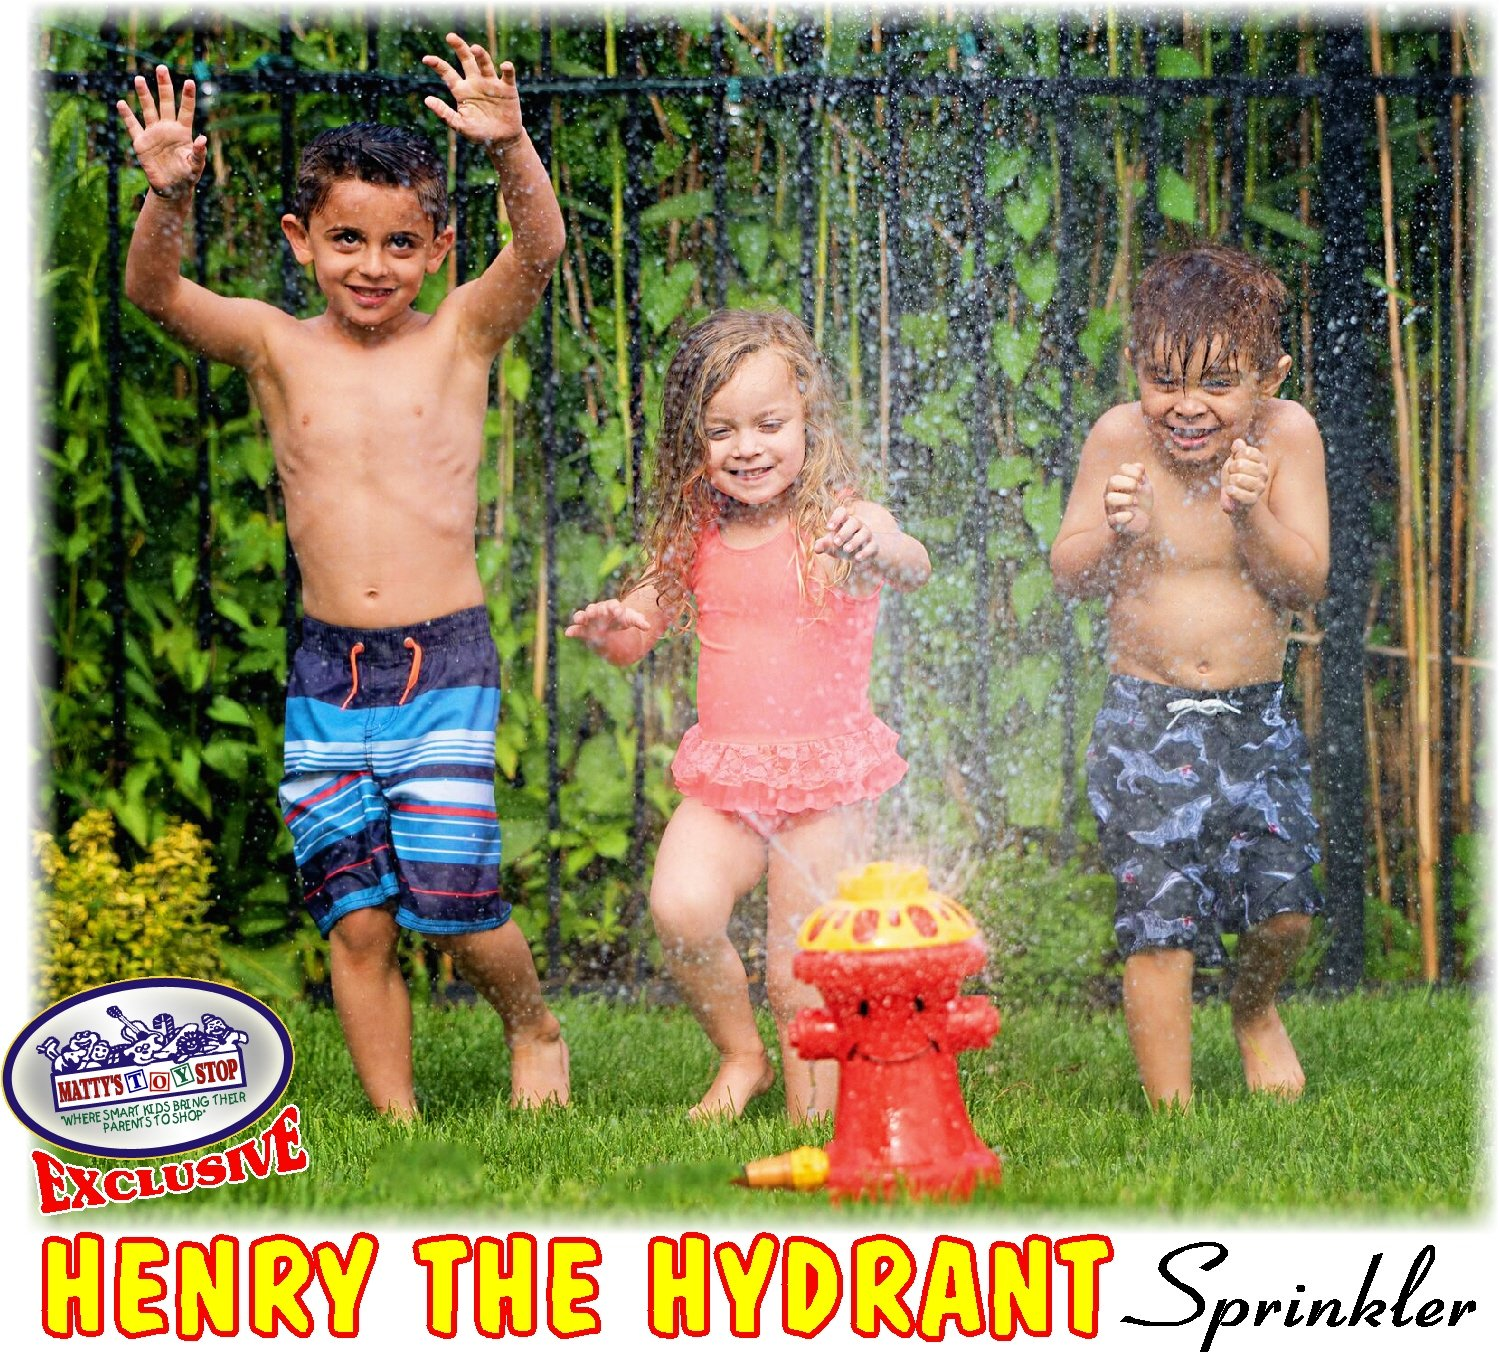 Matty's Toy Stop Henry The Hydrant Water Sprinkler for Kids